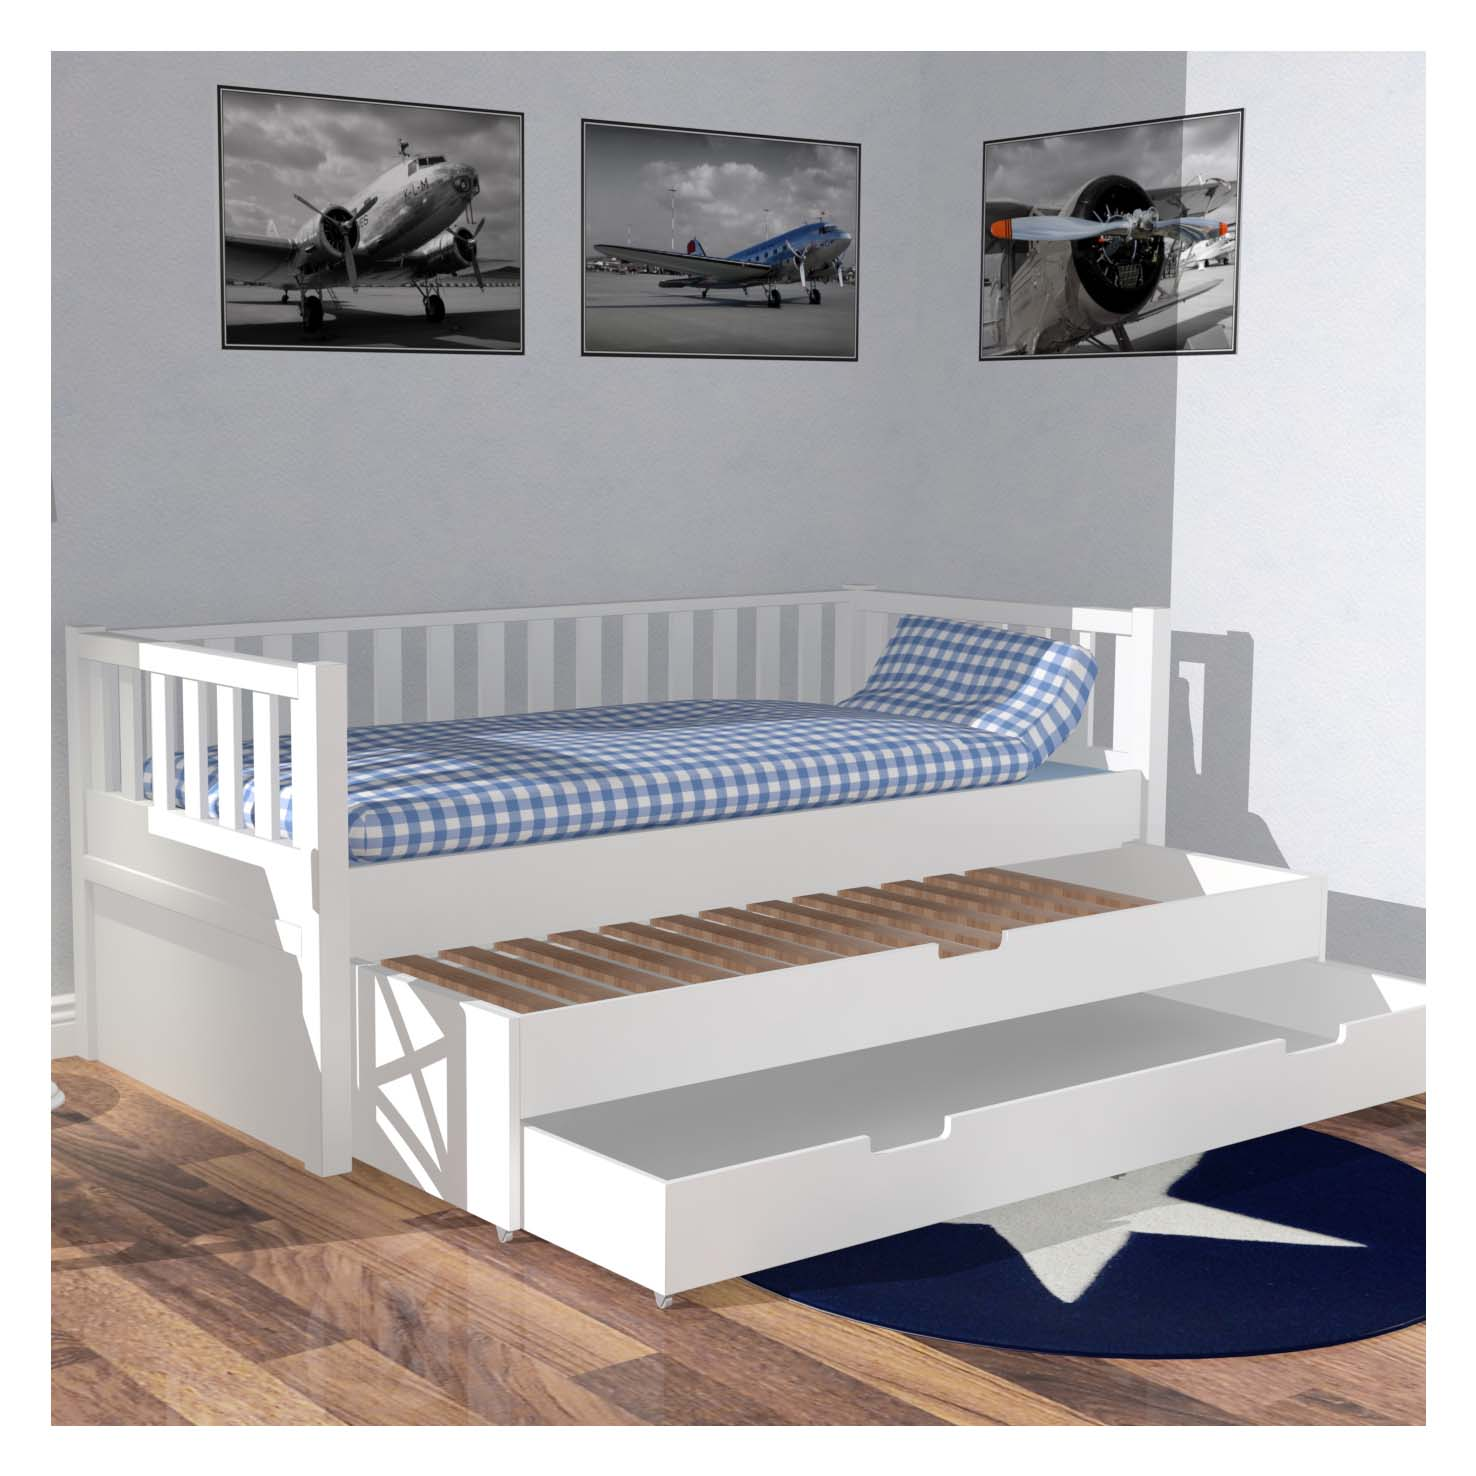 kinderbett ausziehbar kinderbett andrea n with kinderbett ausziehbar fabulous ausziehbar xxcm. Black Bedroom Furniture Sets. Home Design Ideas